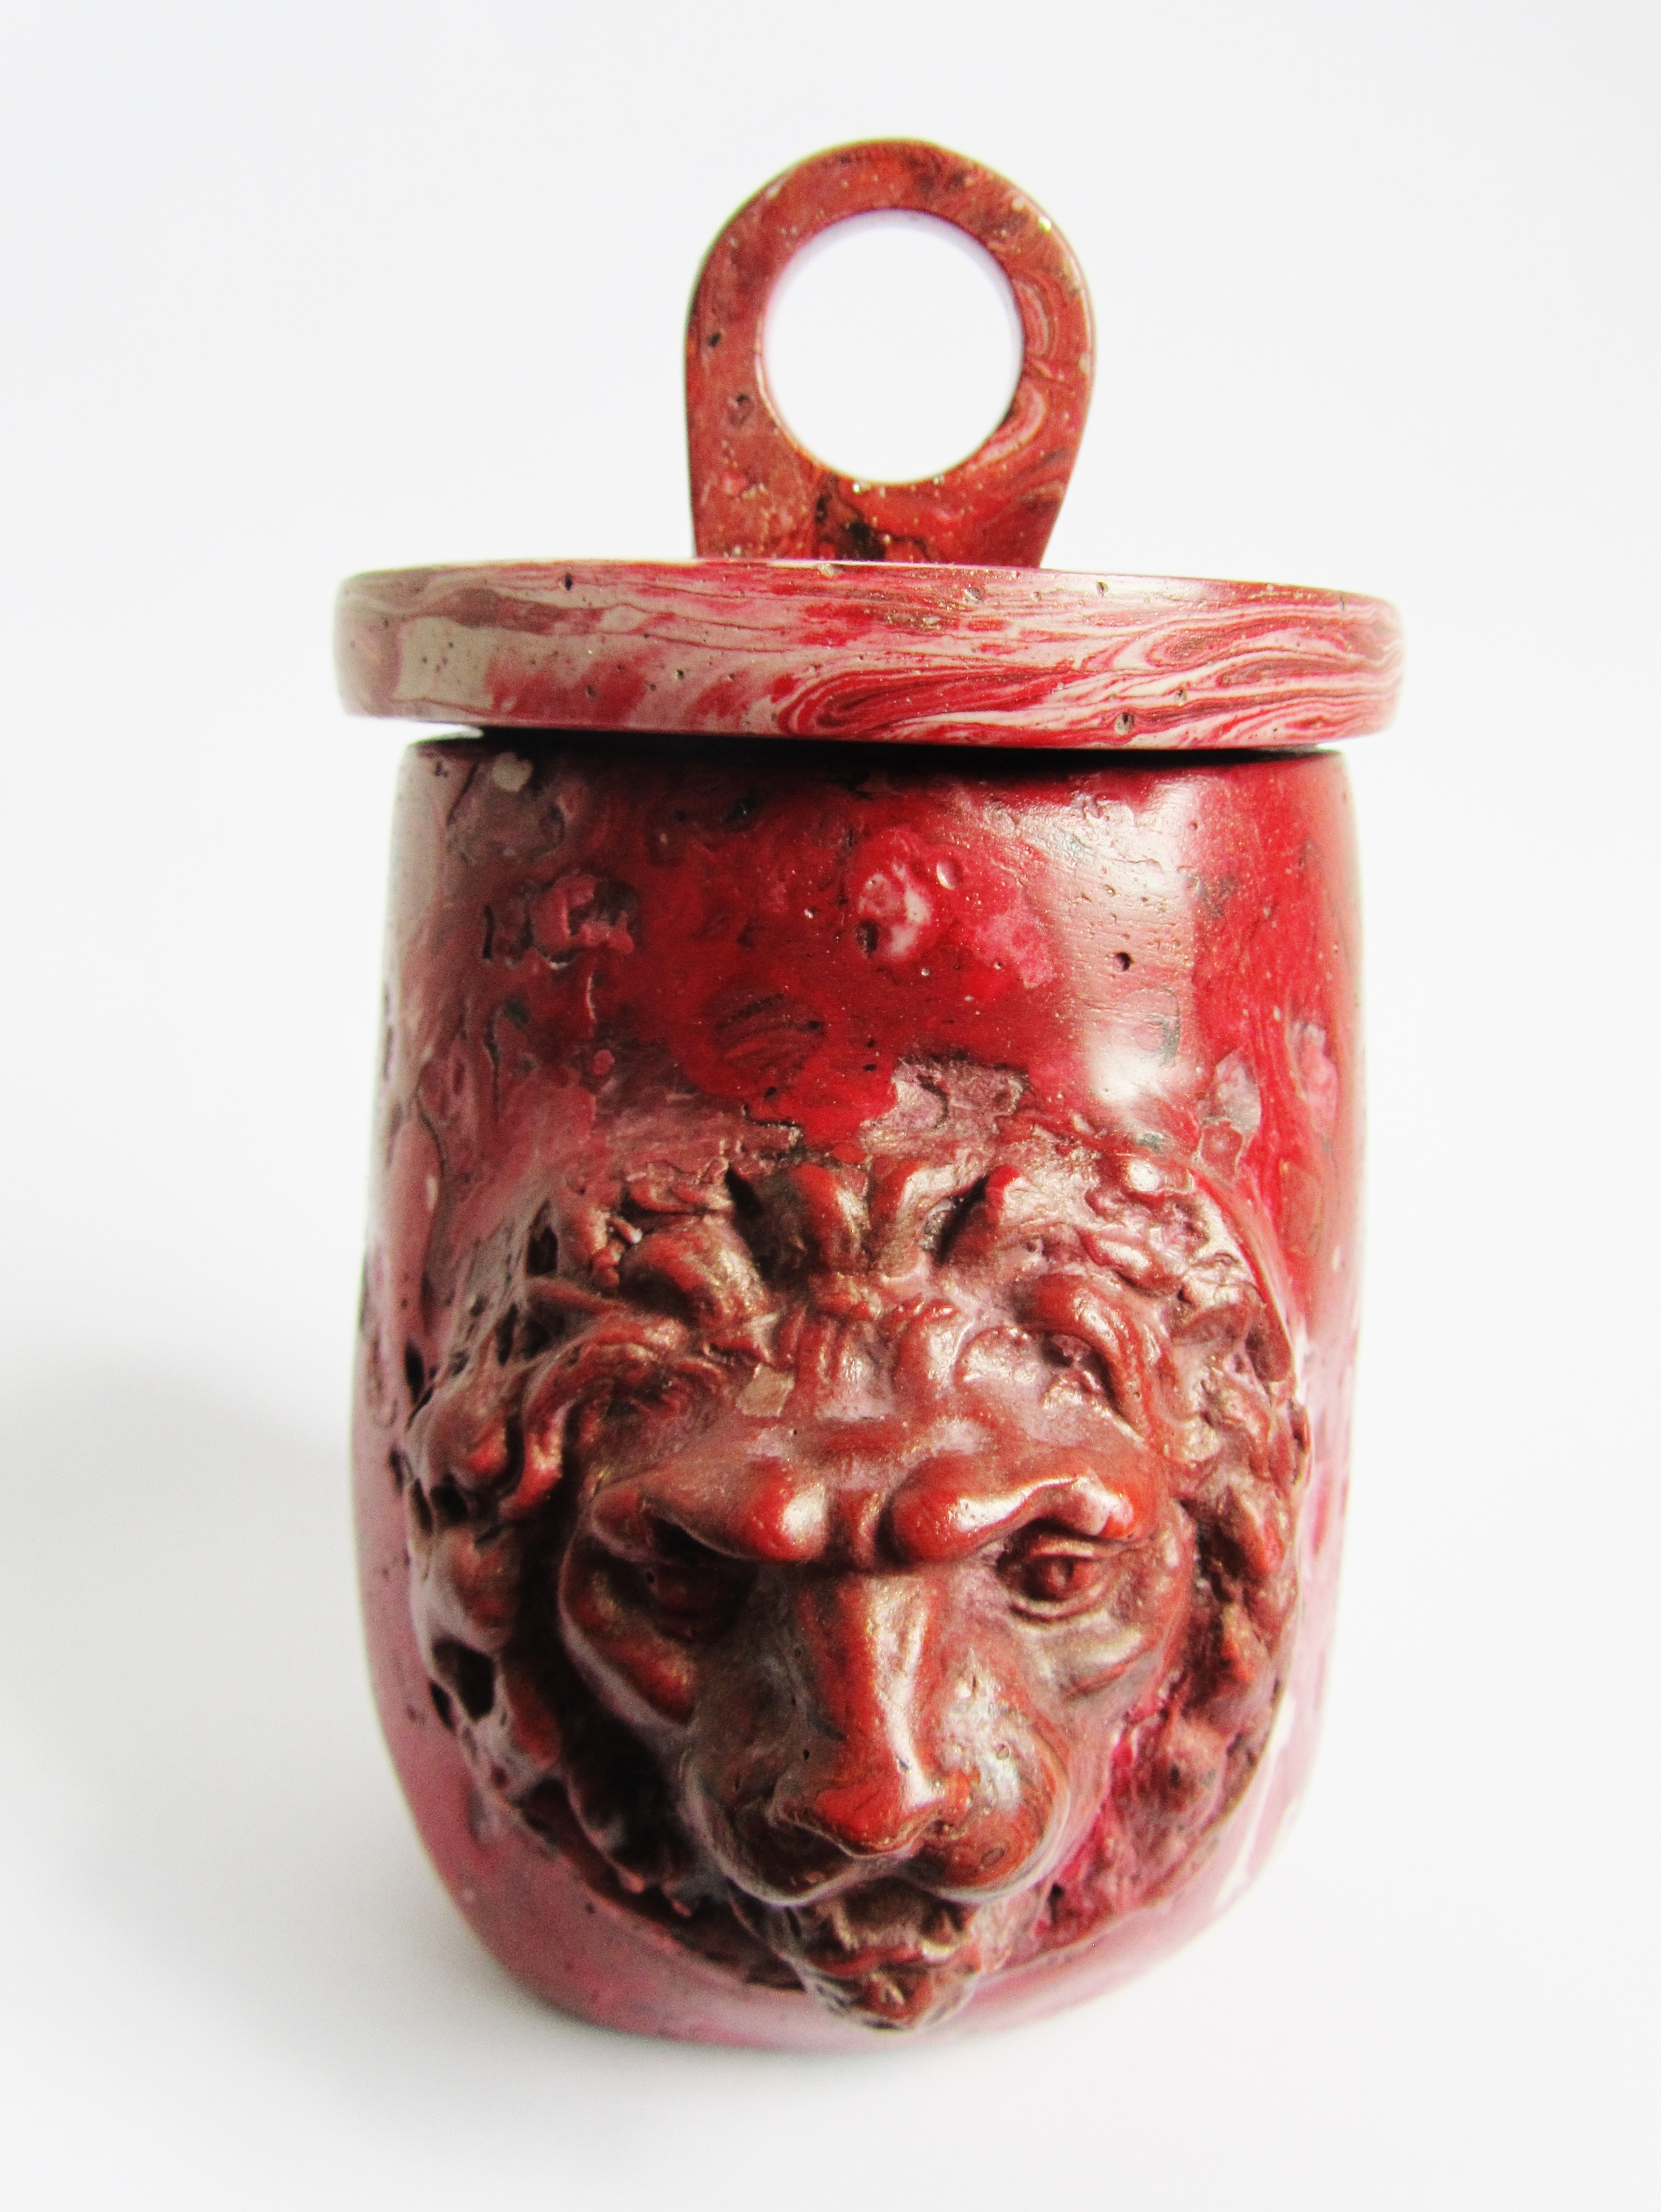 bespoke pyxis red pot jade mellor jewellery.JPG